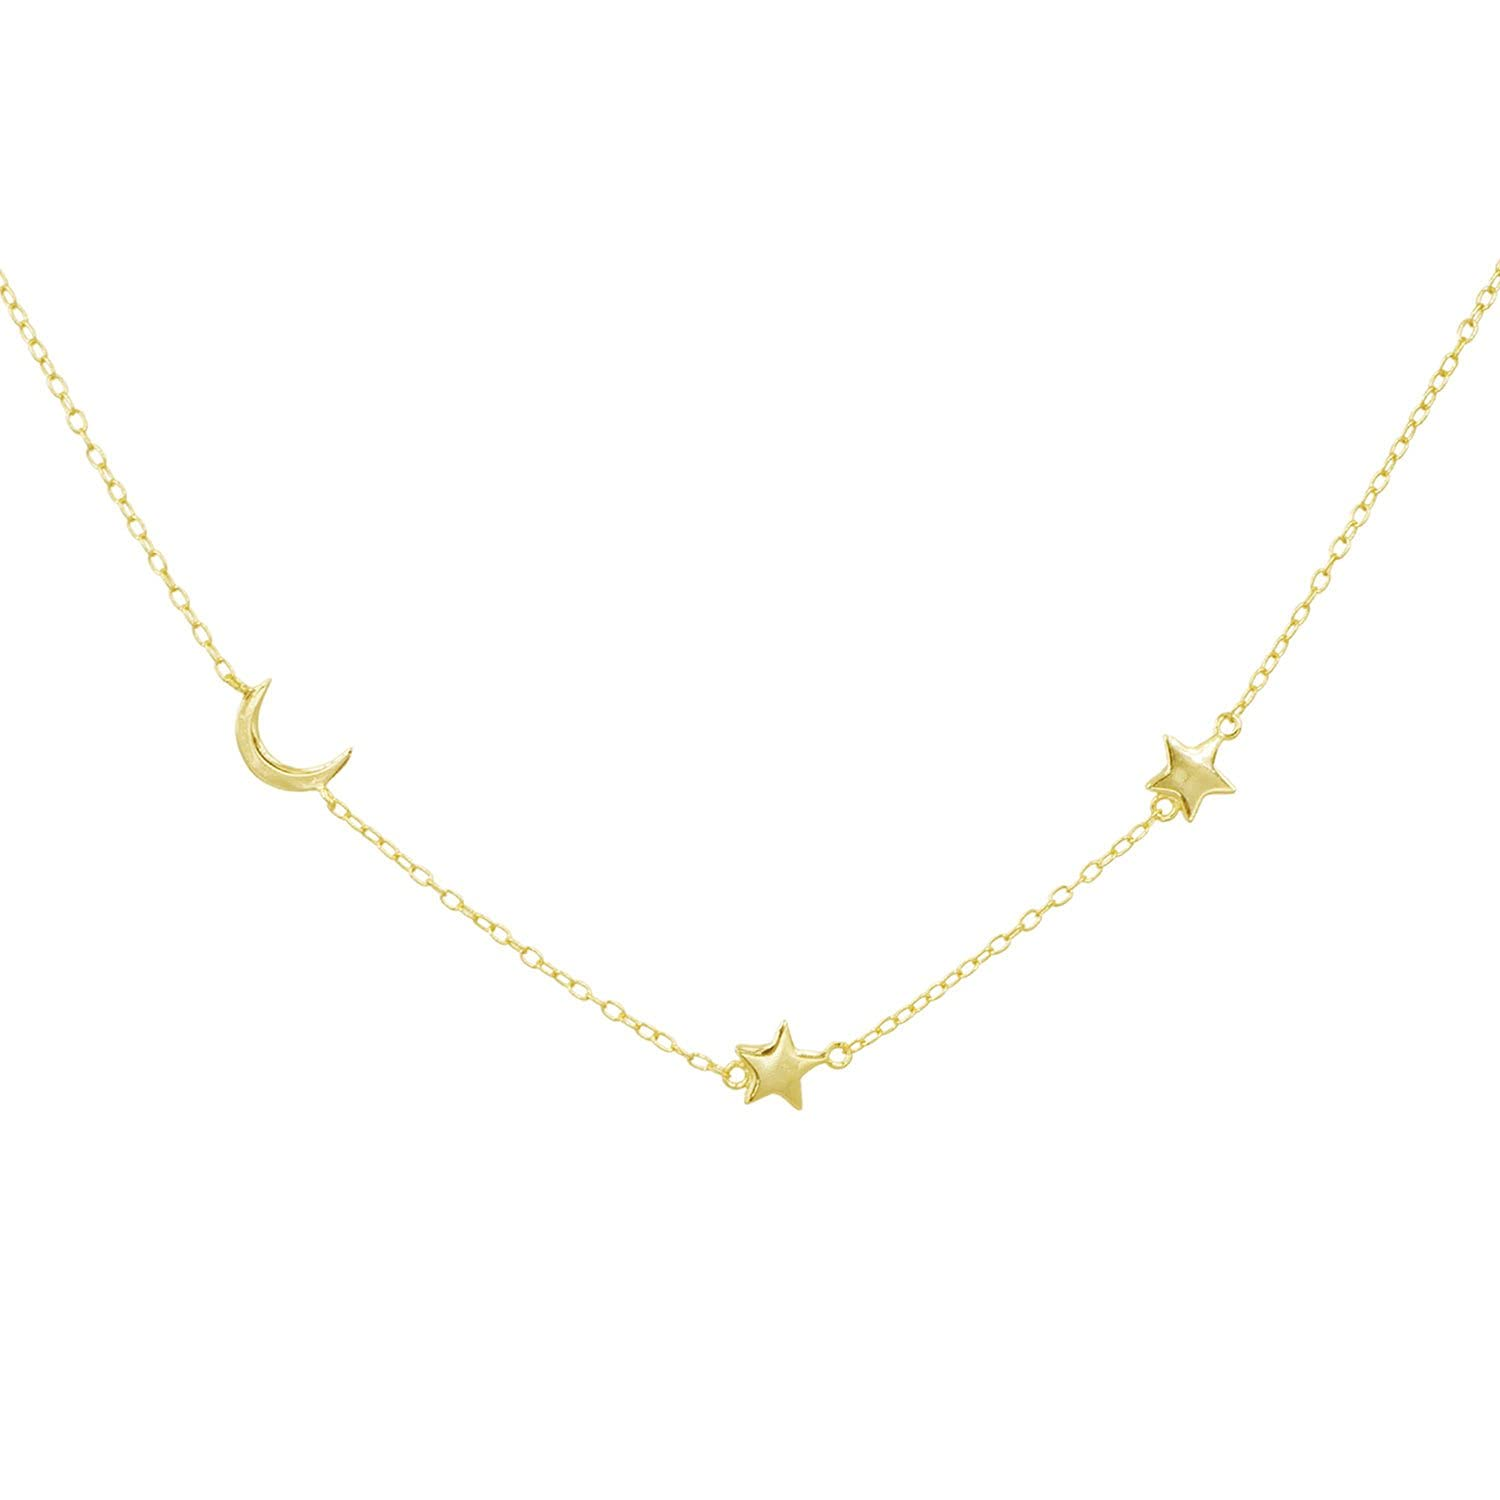 Amanda Deer Max 85% OFF Moon Colorado Springs Mall and Star Necklace 14kt plus Plated Gold E 16